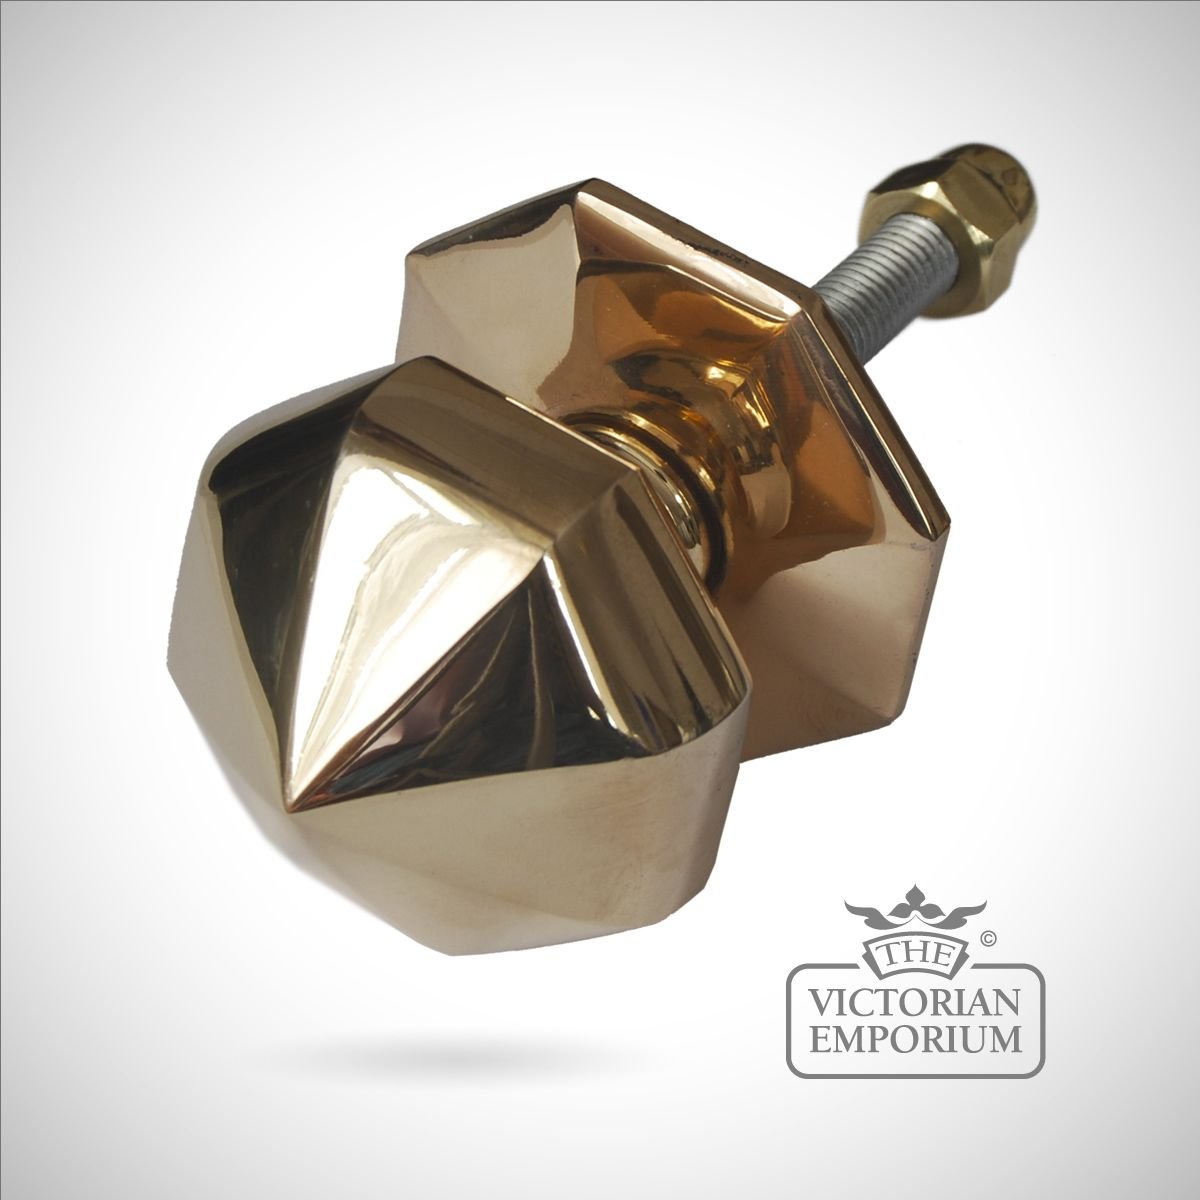 Octagonal Front Door Knob Door knobs and door handles